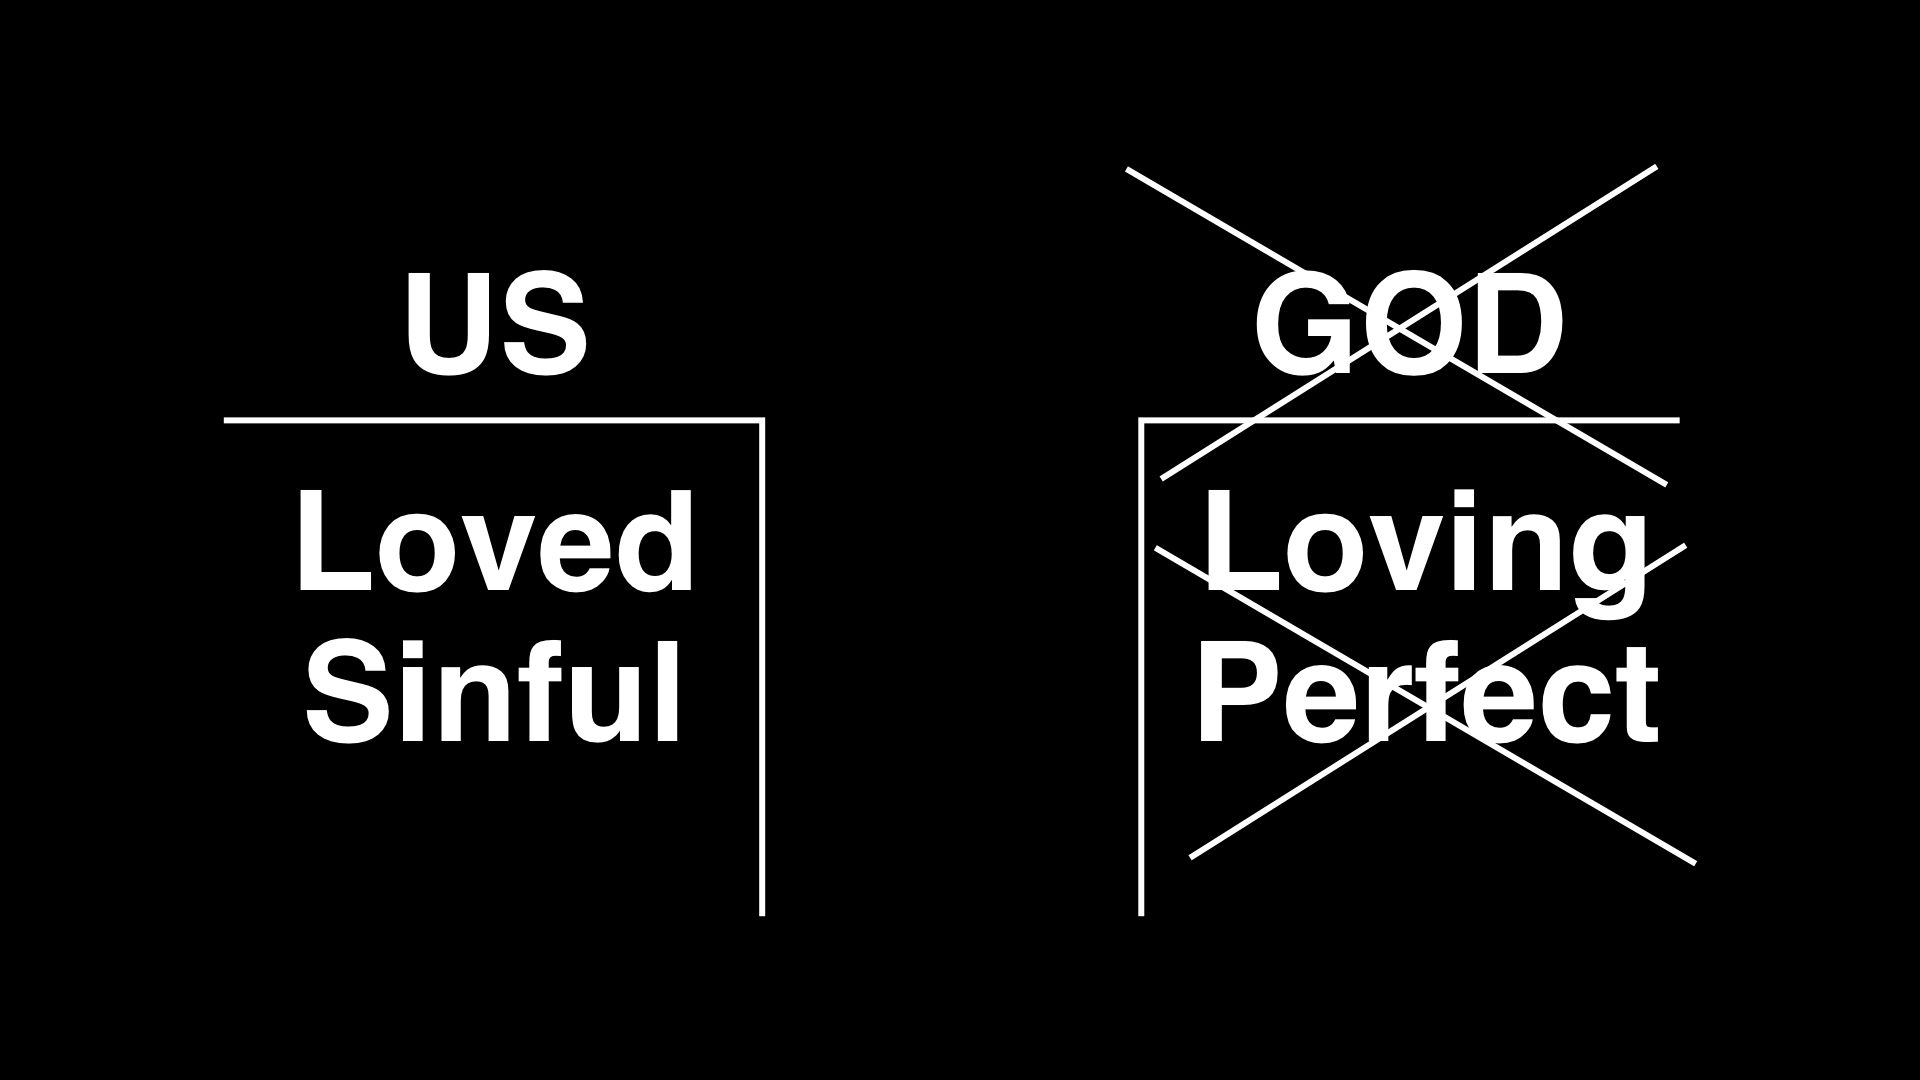 Others may believe that God exists, but they convince themselves that he's not all that perfect or holy. He doesn't really care about our sin. He just looks the other way. But God wouldn't be God if he just ignored sin. Sin destroys his good creation and good creatures. God takes sin seriously and so should we.